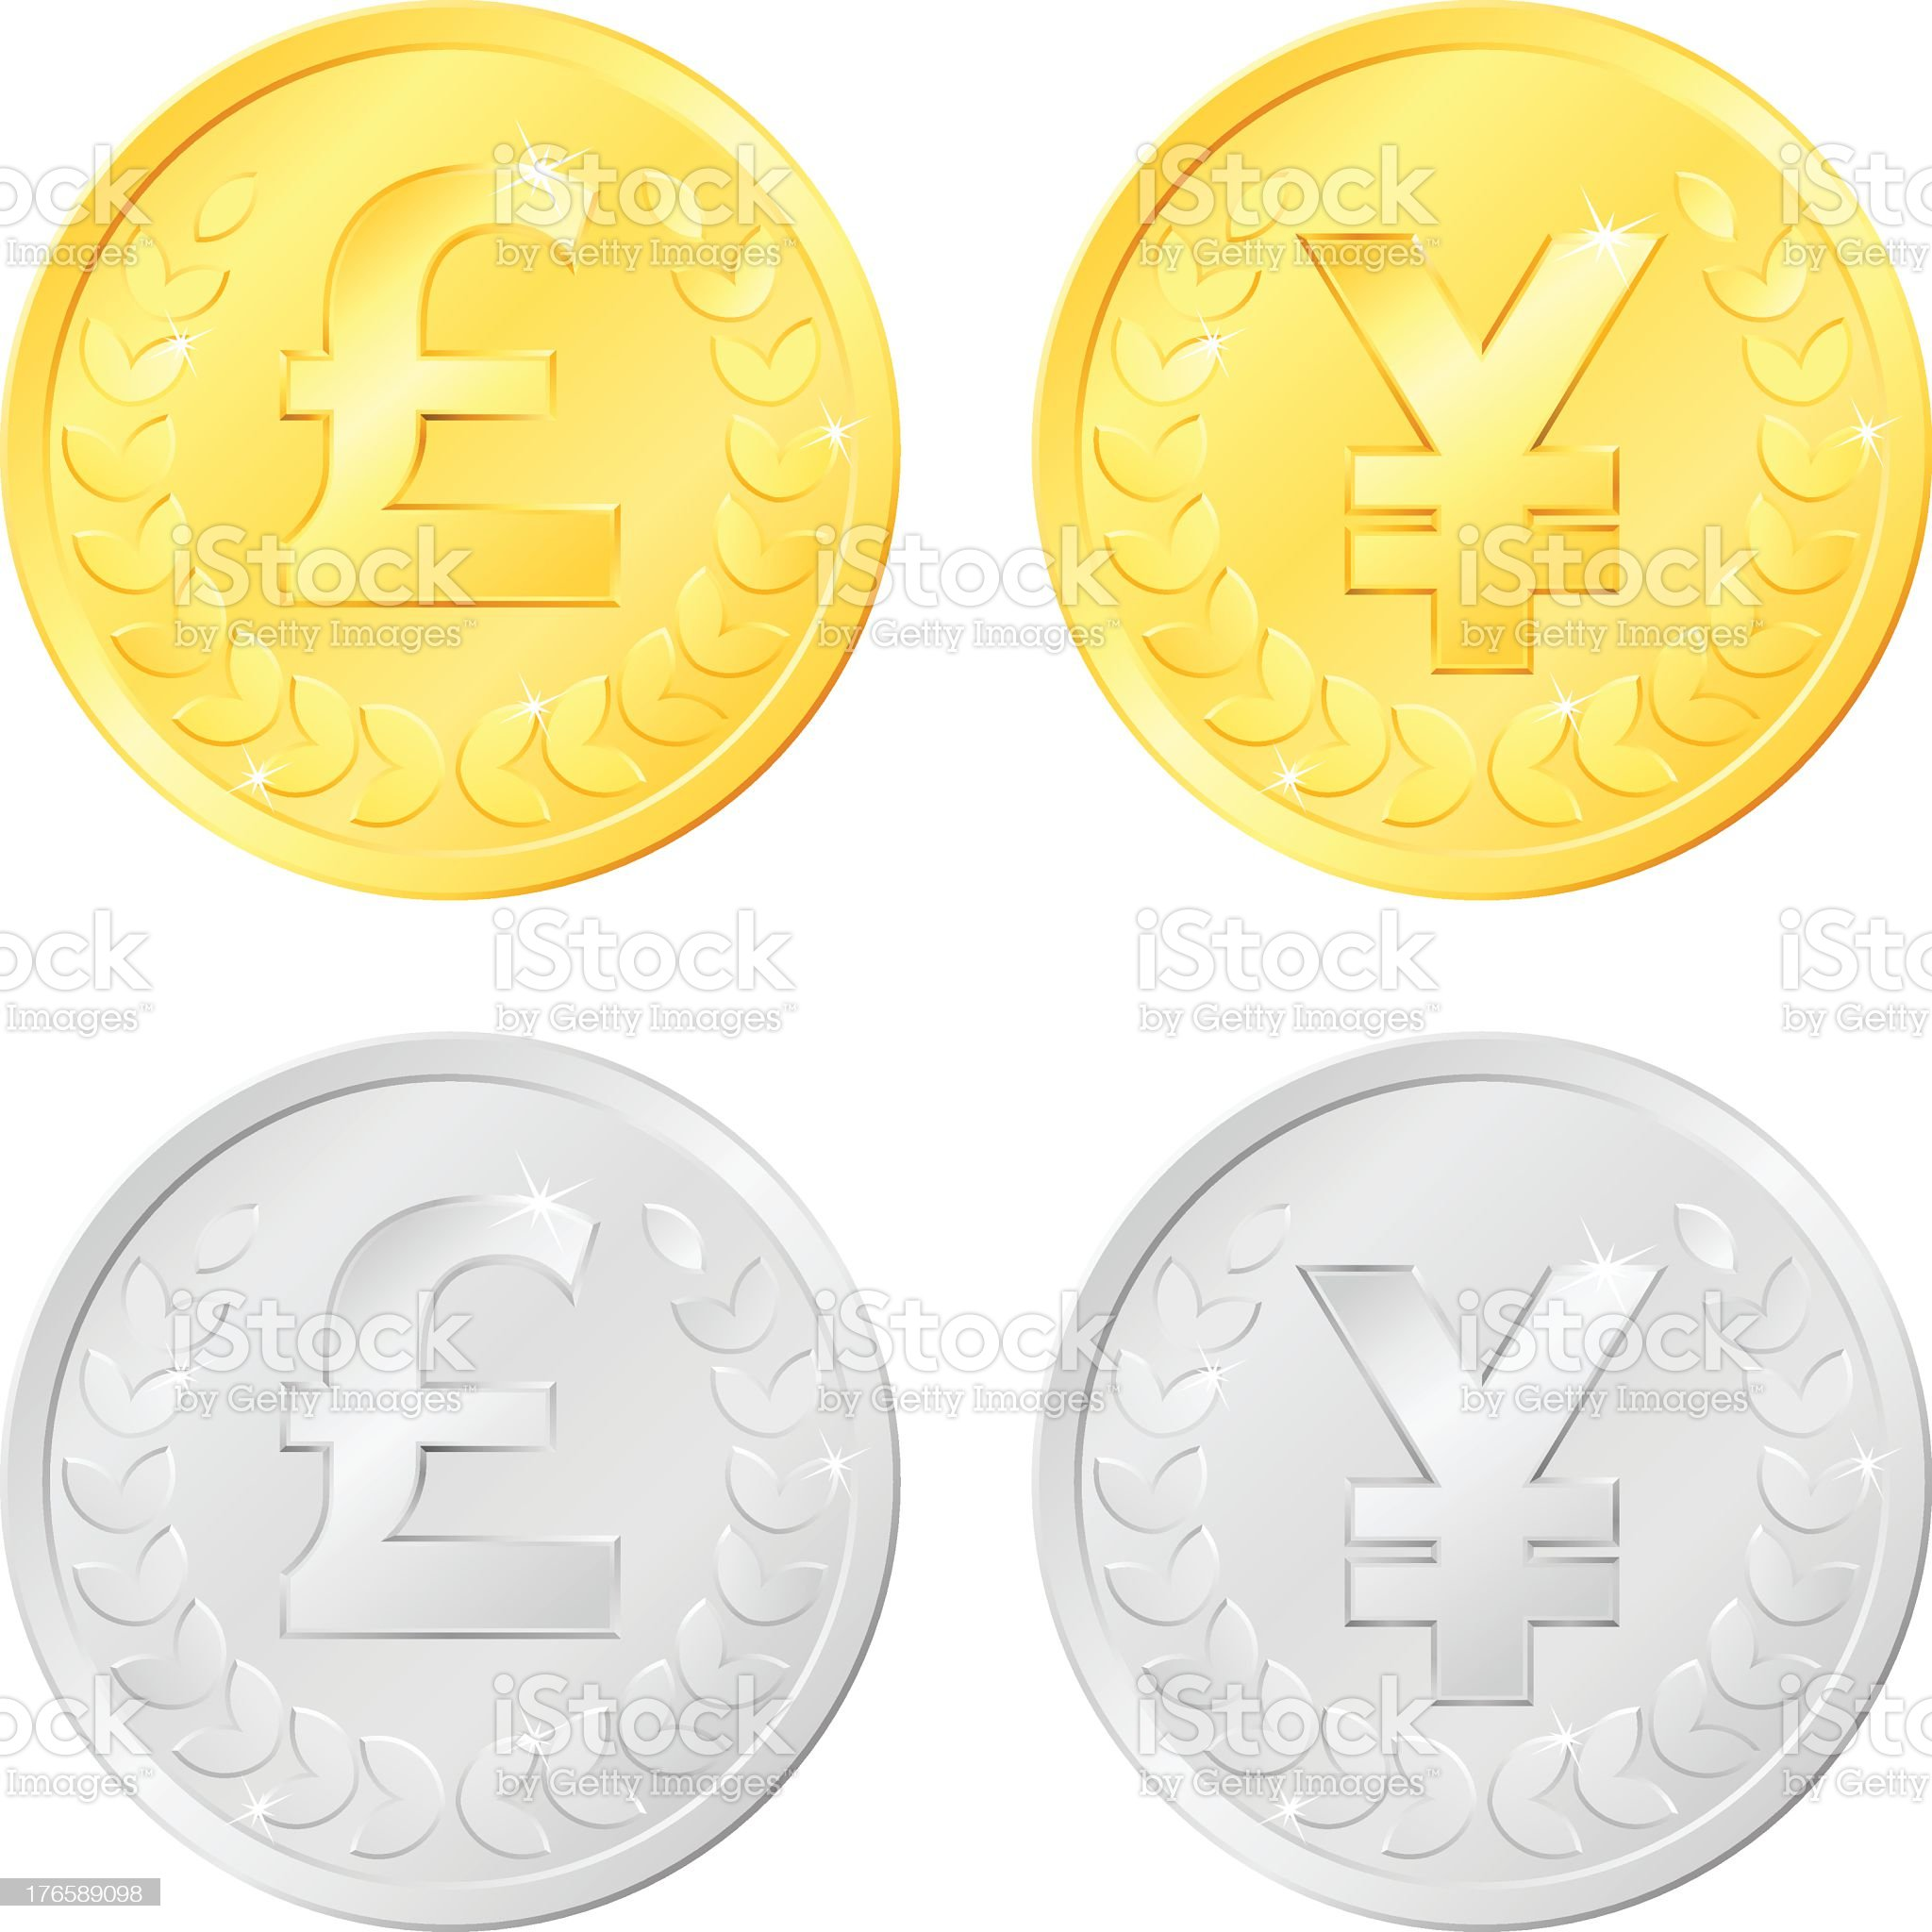 Pound and Yen Coins royalty-free stock vector art